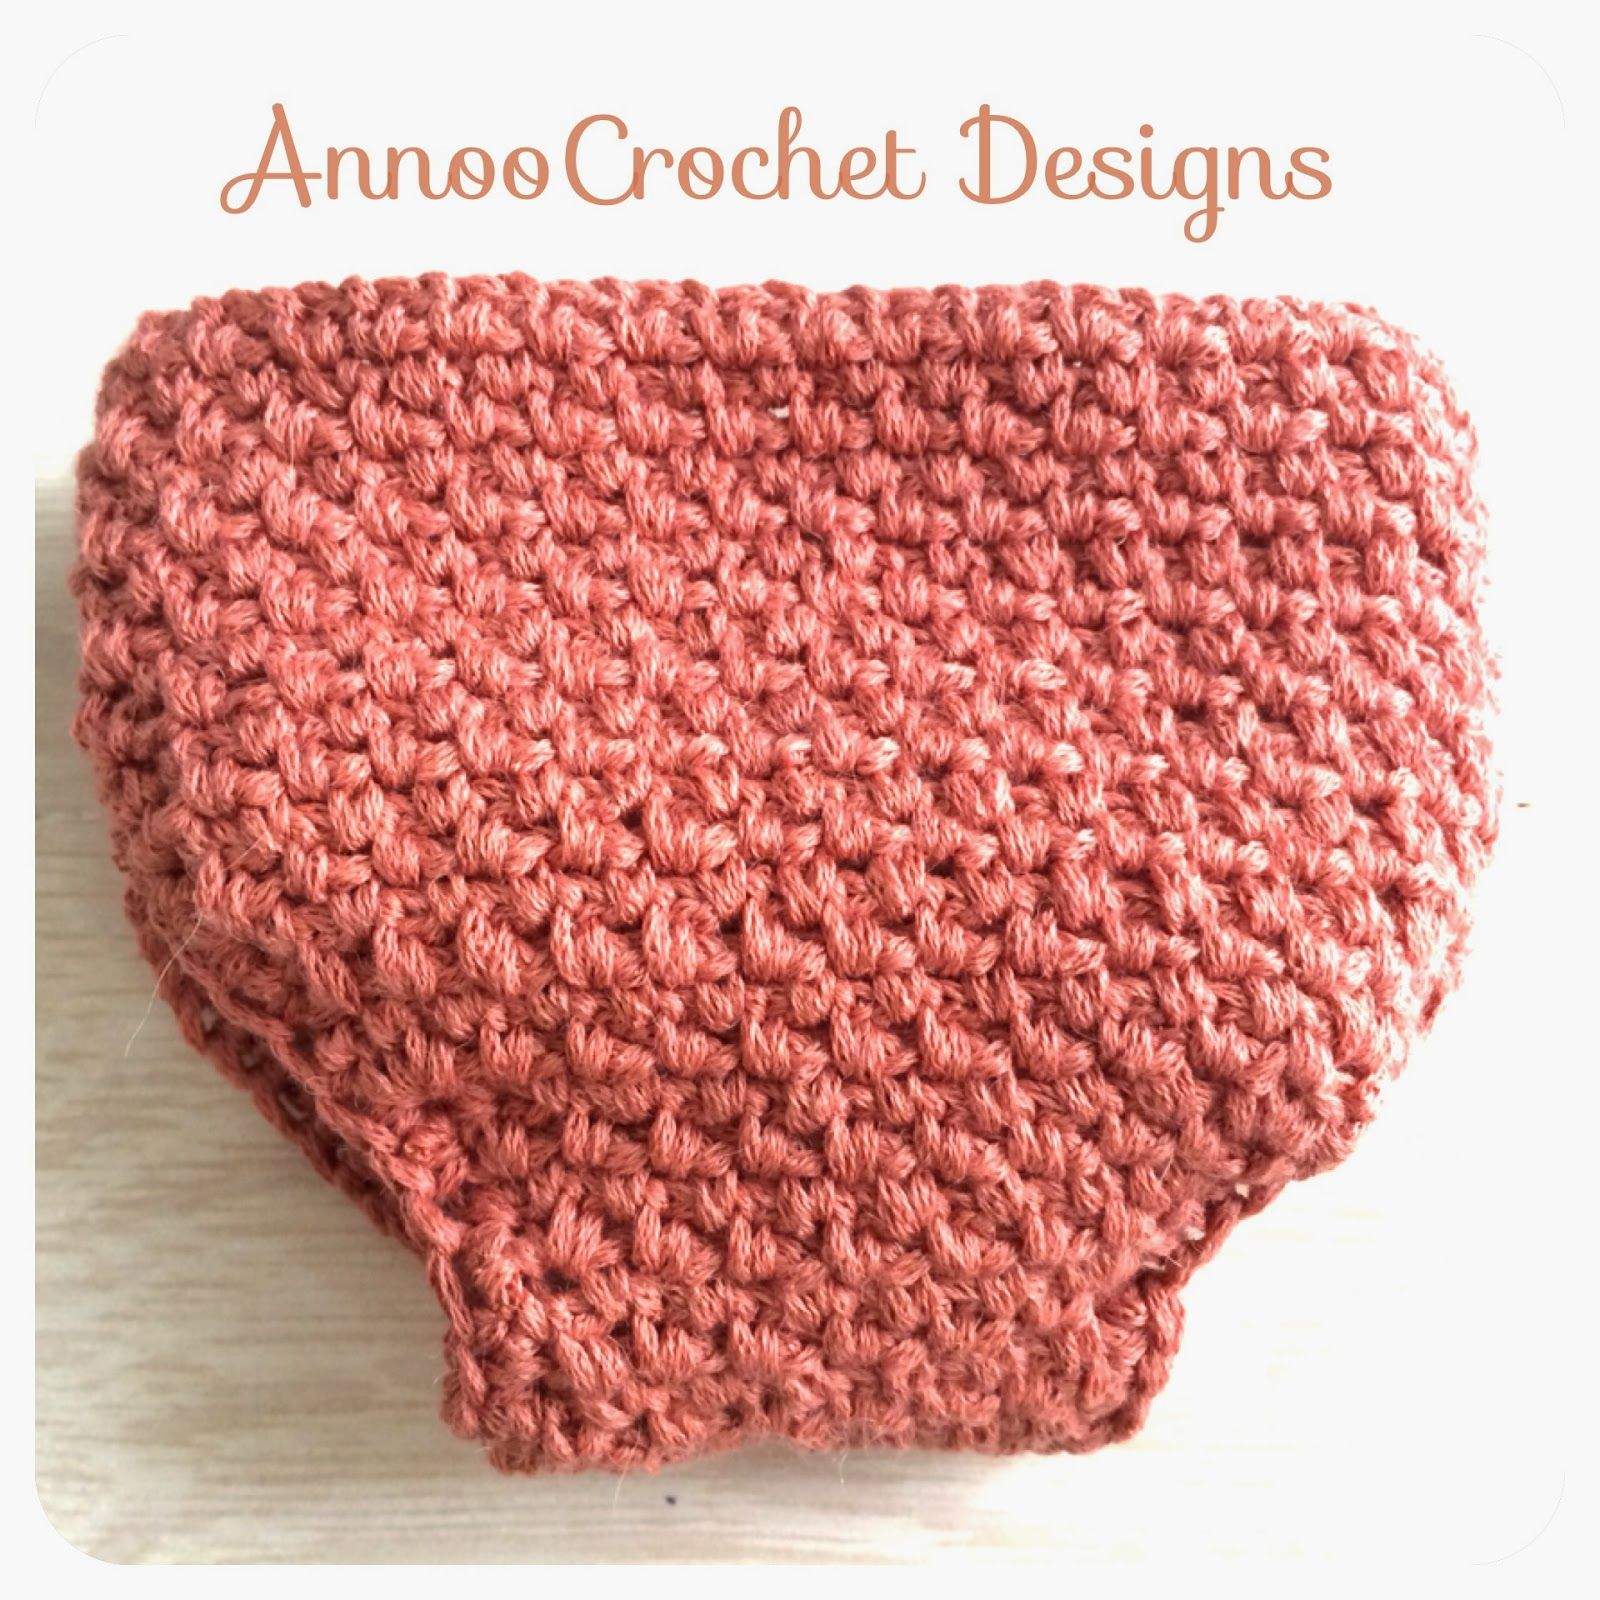 Newborn Diaper Cover Free Pattern By AnnooCrochet Designs I went to ...